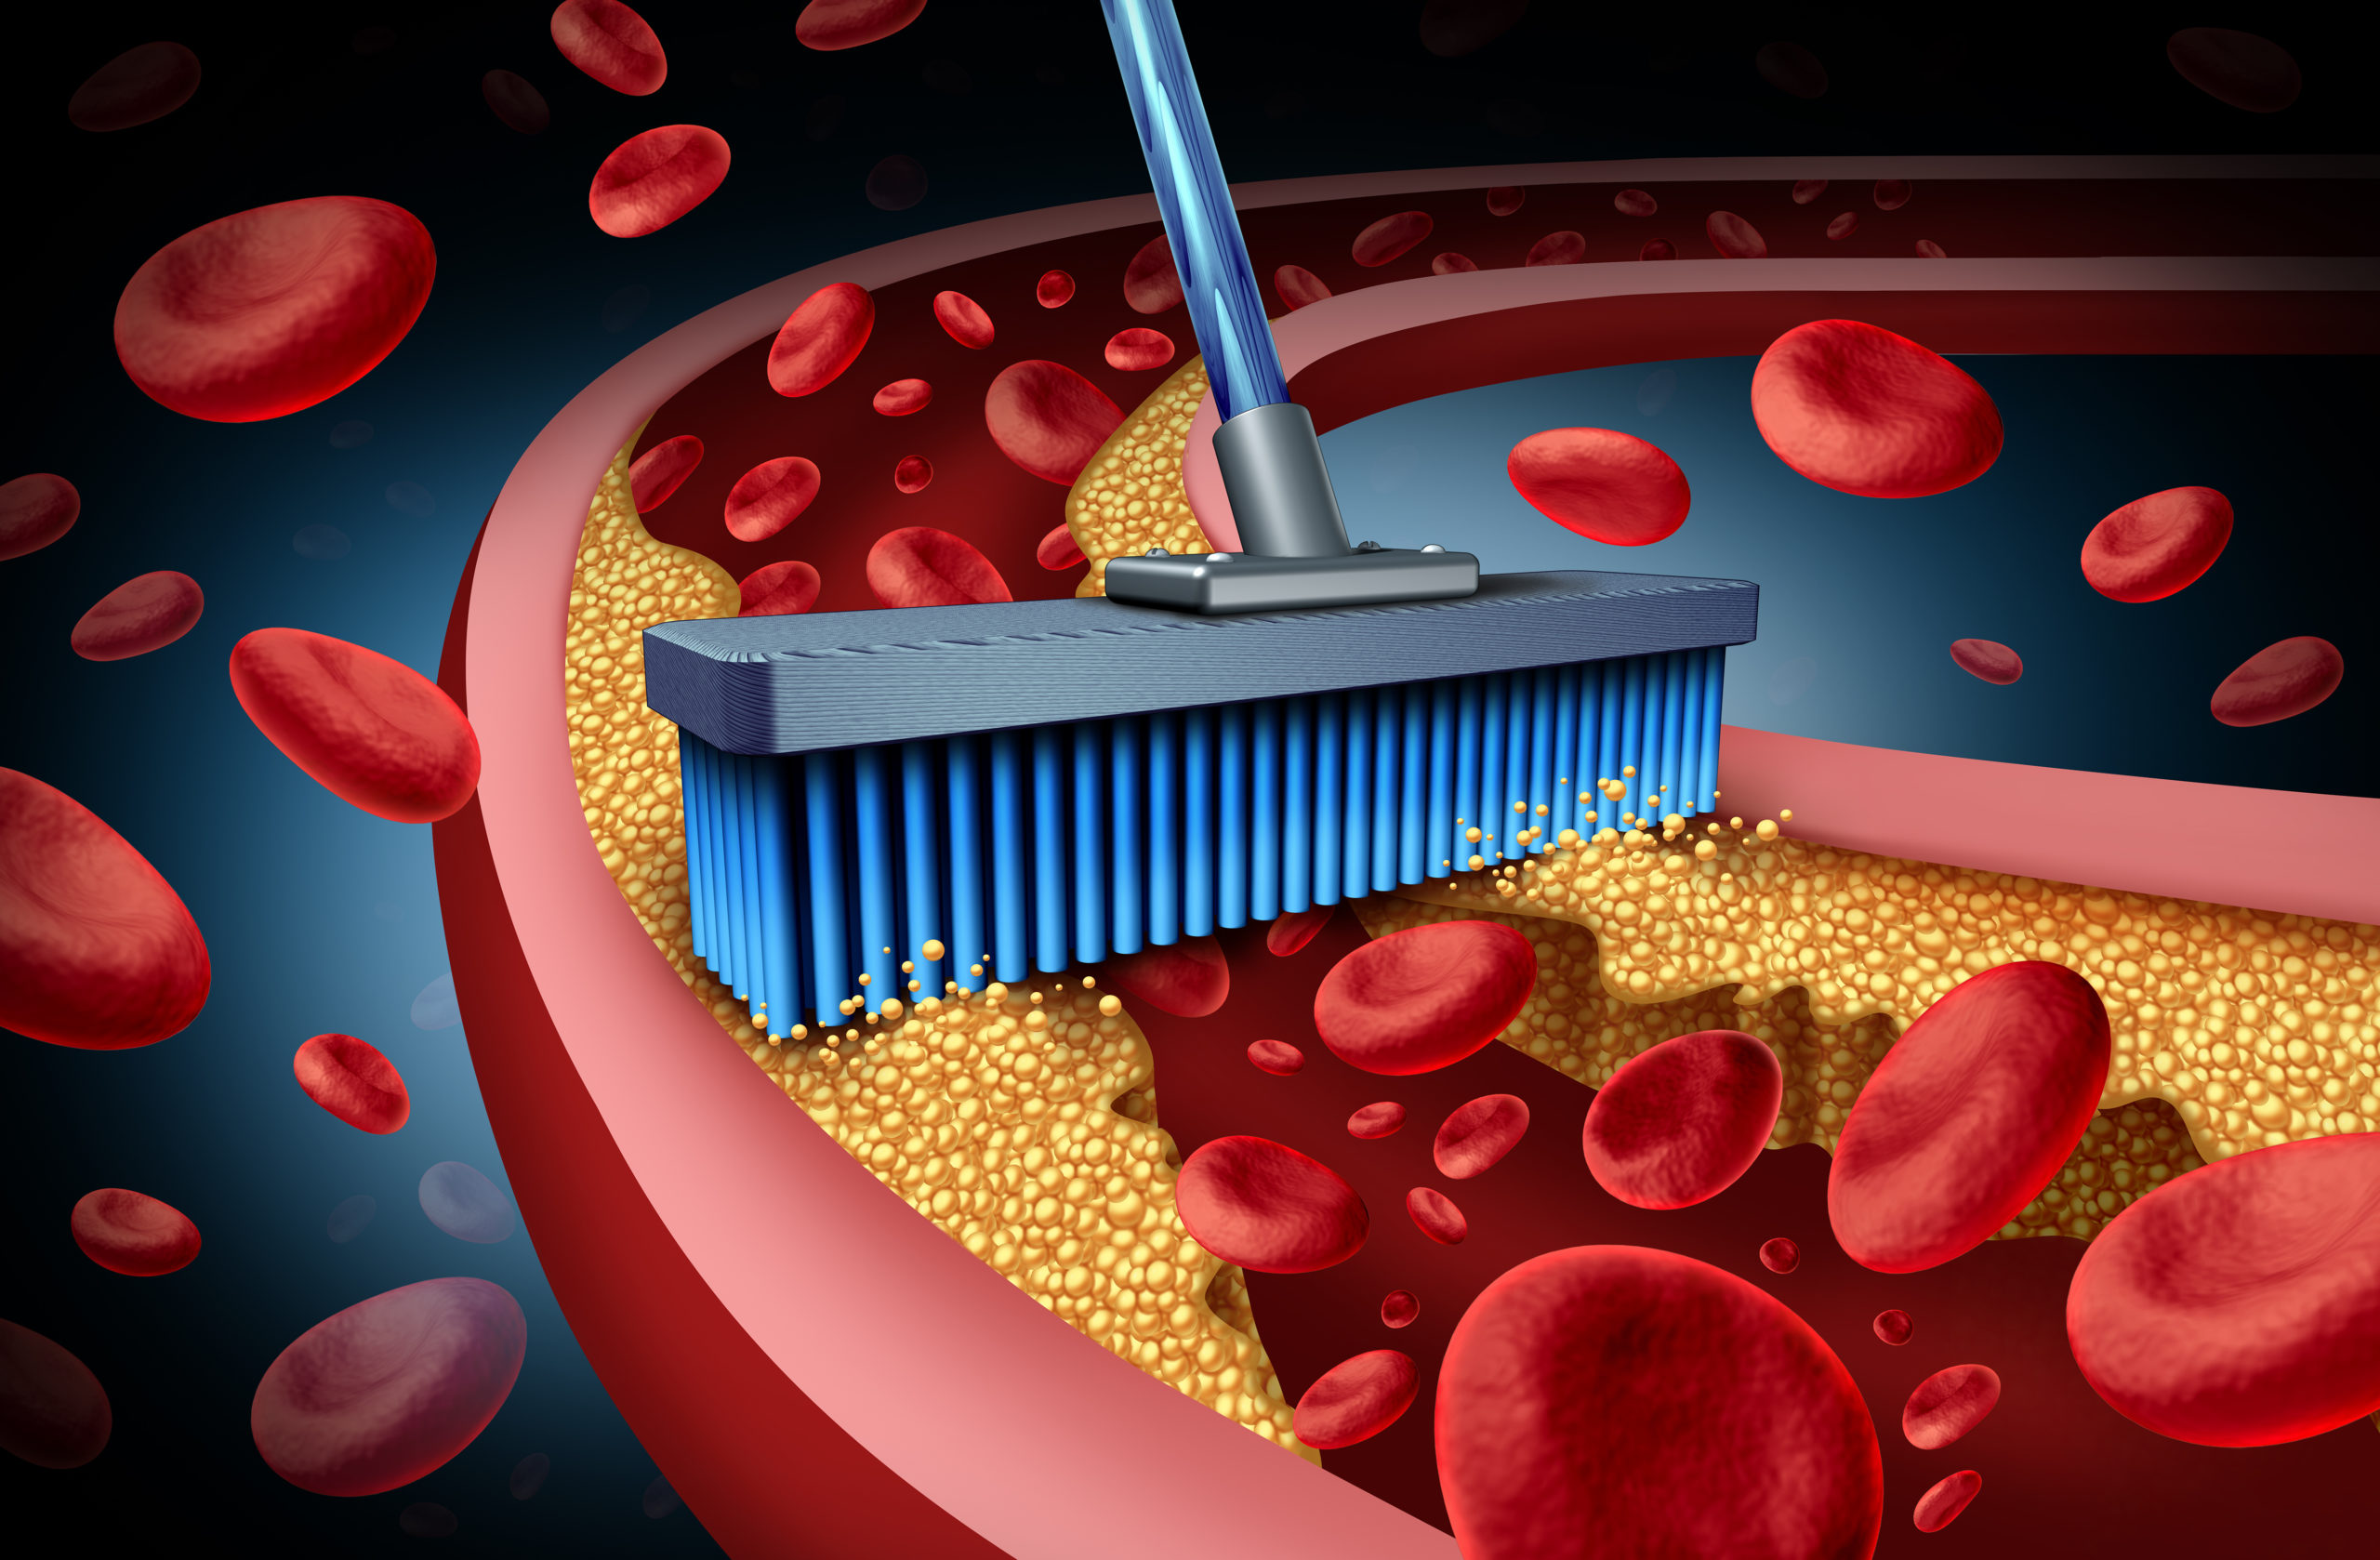 Animation of a brush removing a yellow substance from a blood vessel